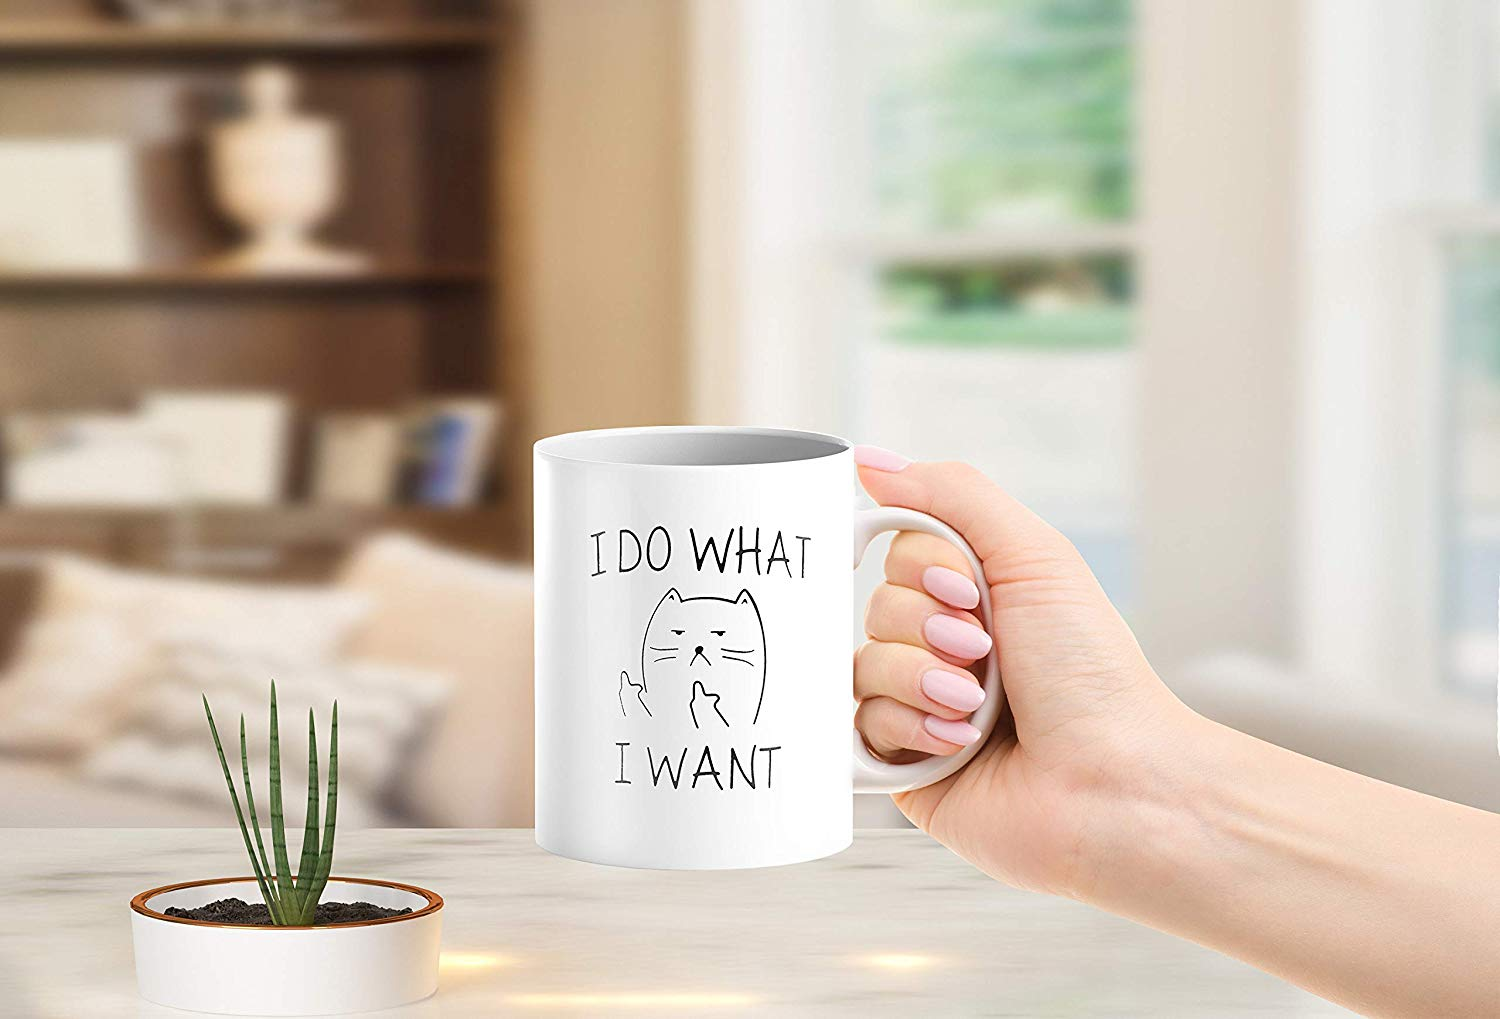 I Do What I Want Funny Coffee Mug Cat Middle Finger 11 Oz Birthday Gift For Men Women Him Or Her B079FX31TX 7